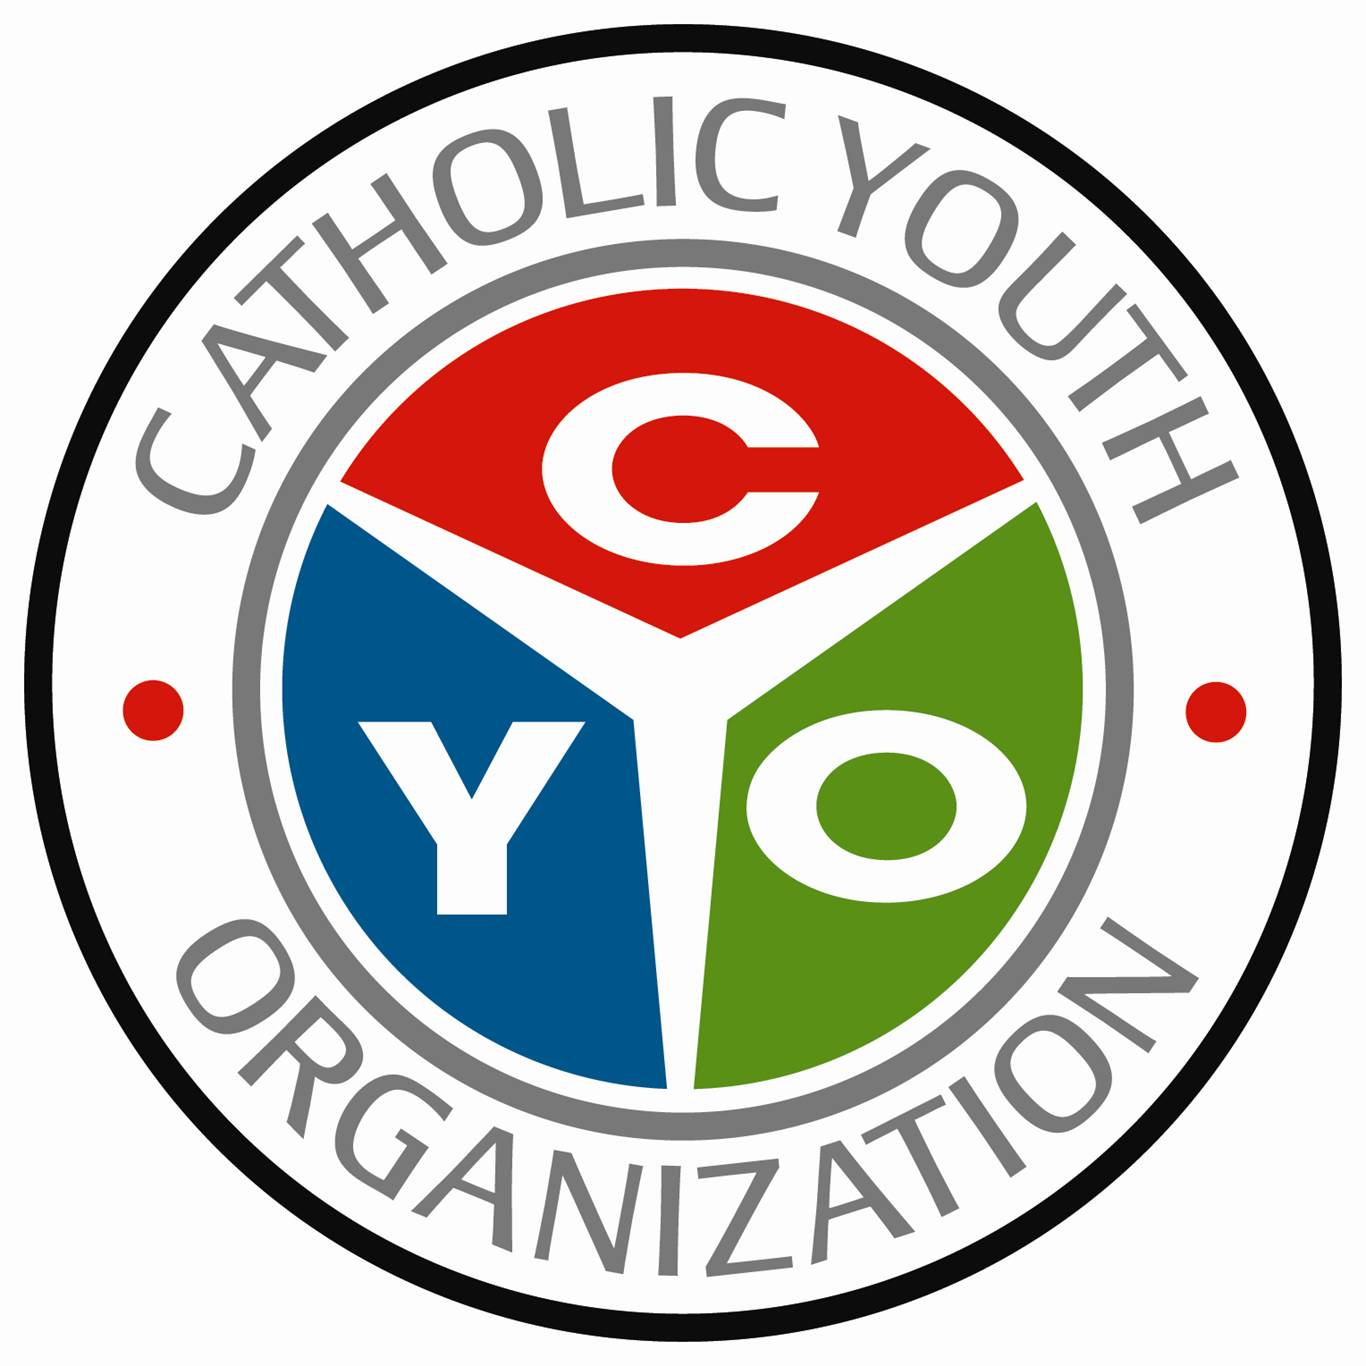 Catholic Youth Organization (CYO)